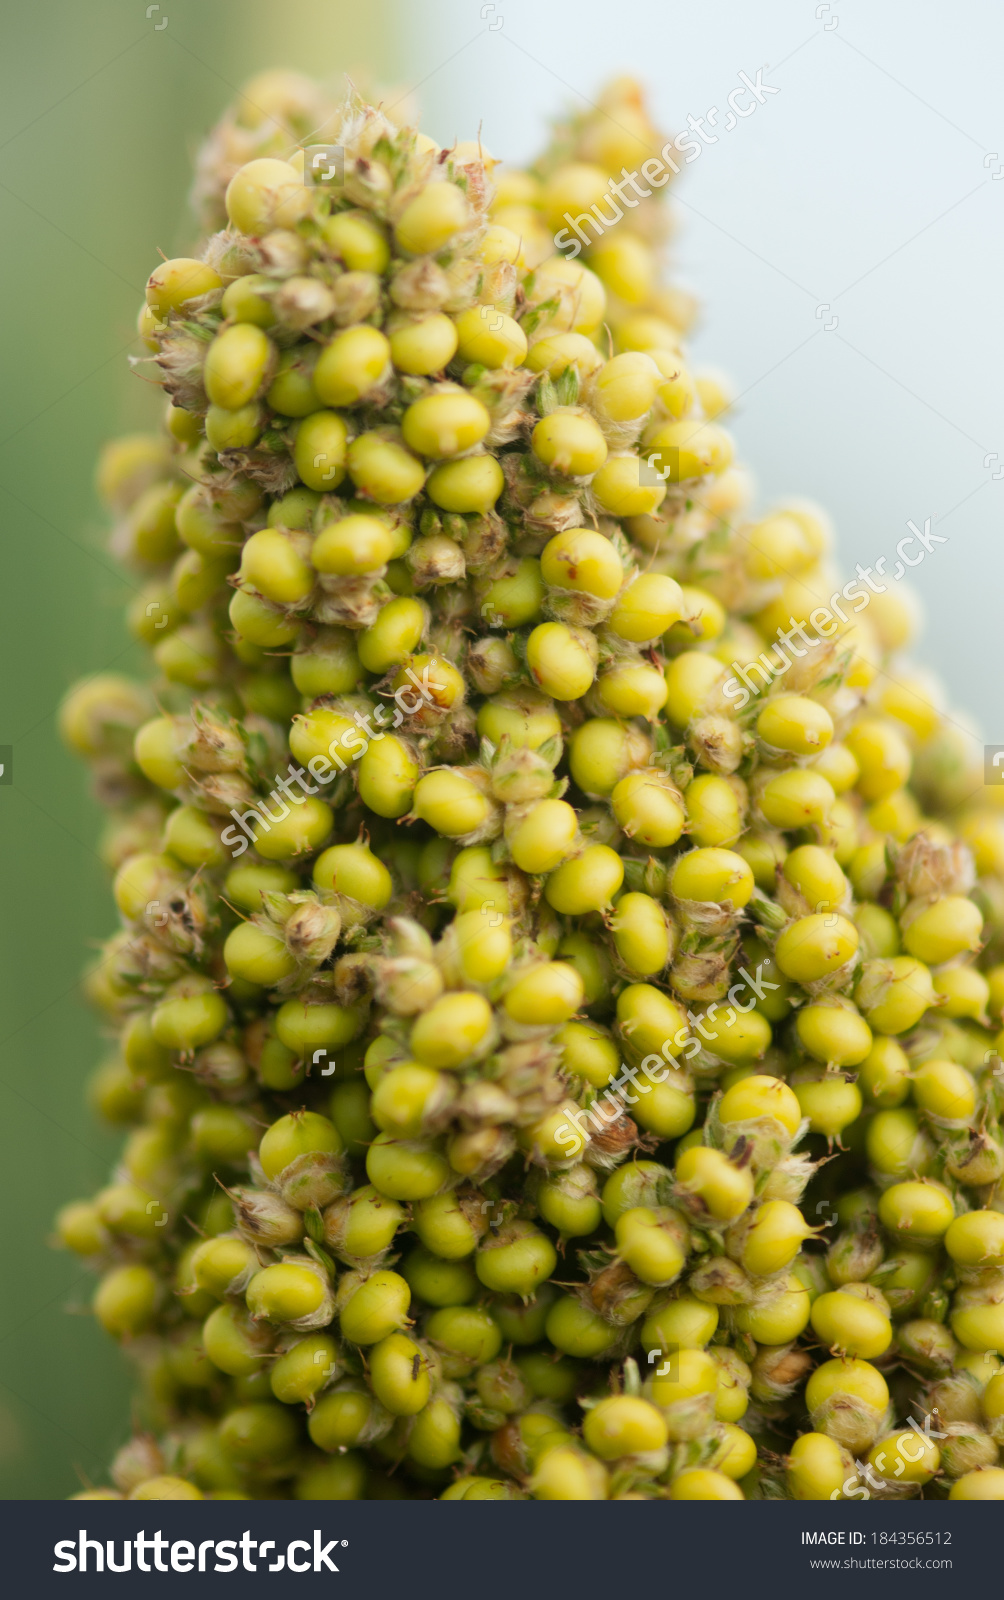 Sorghum Jowar Crop Closeup Rural Village Stock Photo 184356512.